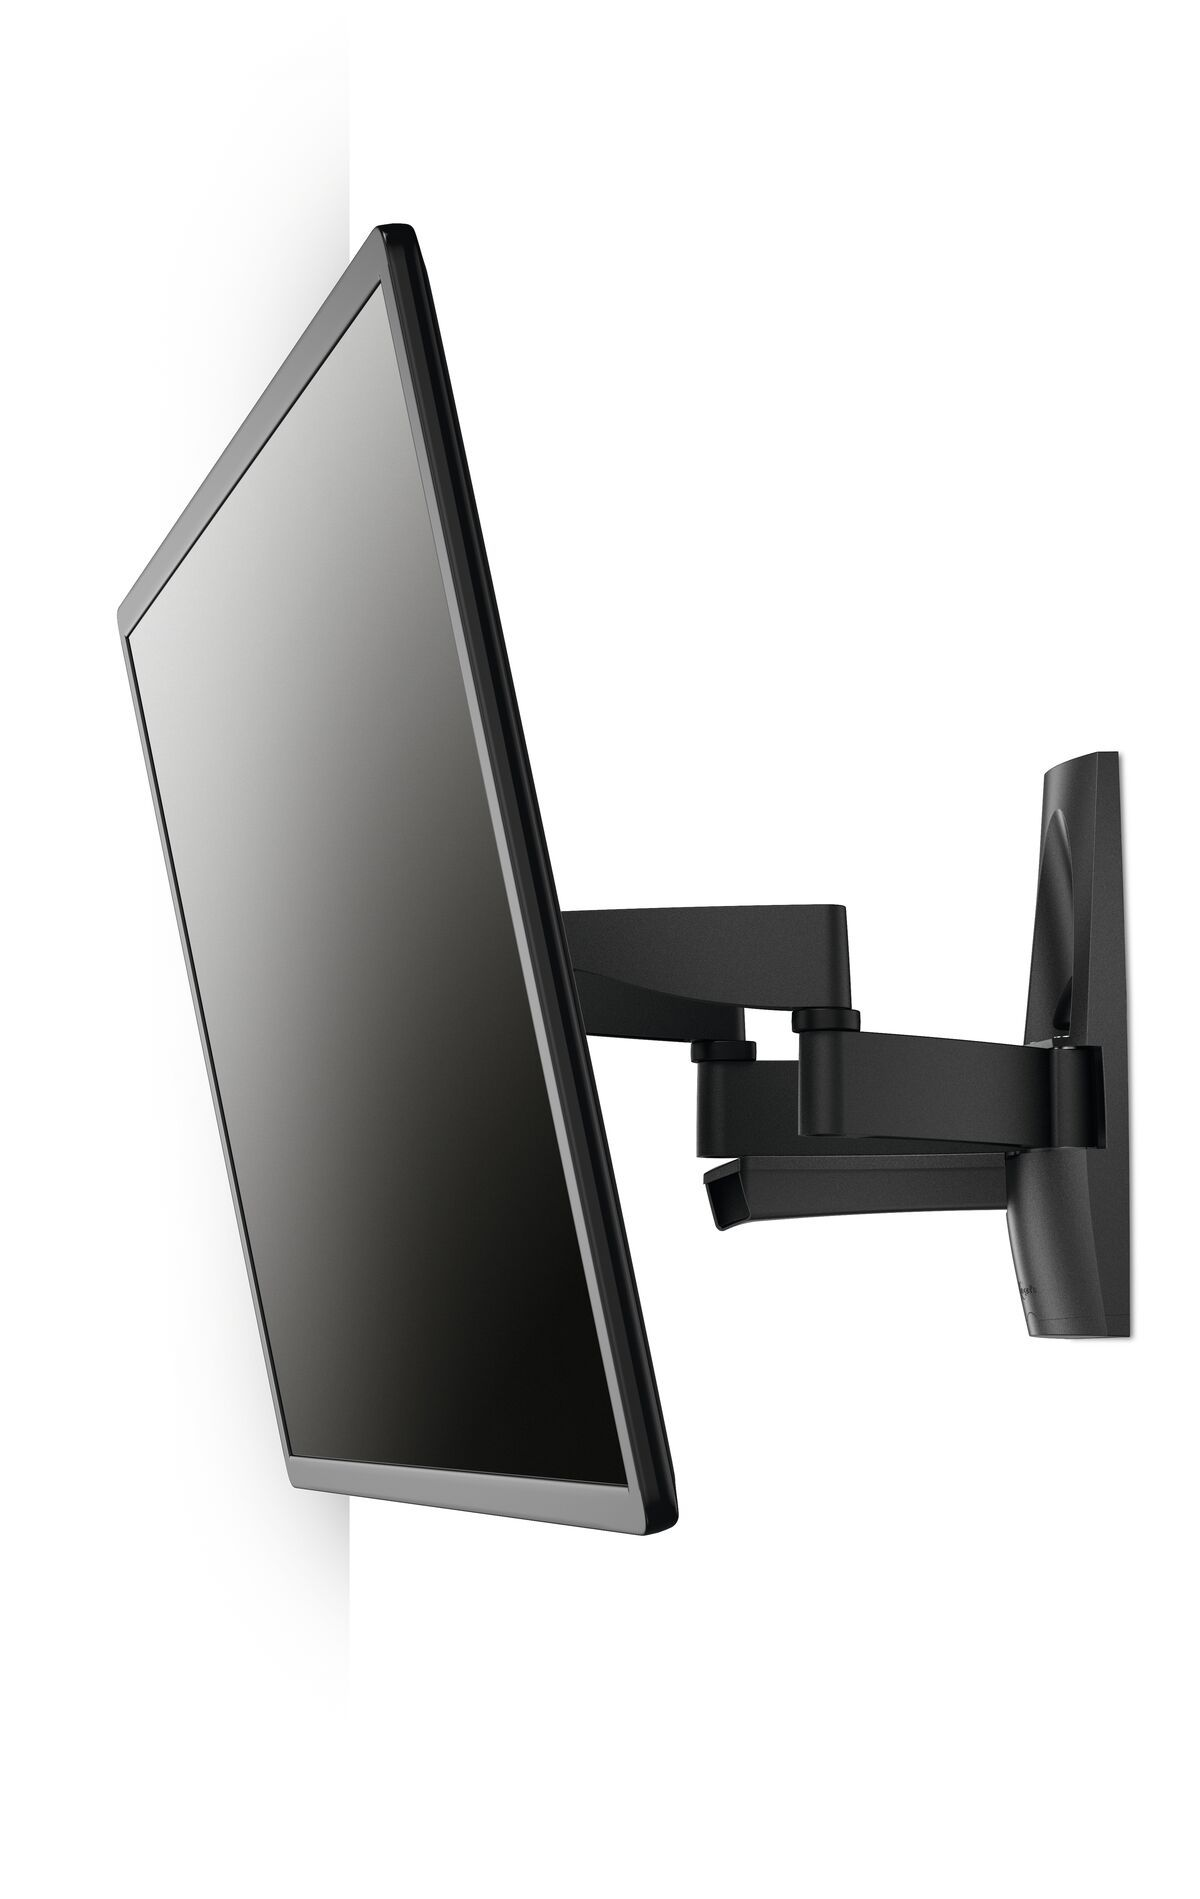 Vogel's WALL 2250 Full-Motion TV Wall Mount - Suitable for Forward and turning motion (up to 120°) - Suitable for Tilt up to 15° - Suitable for White wall